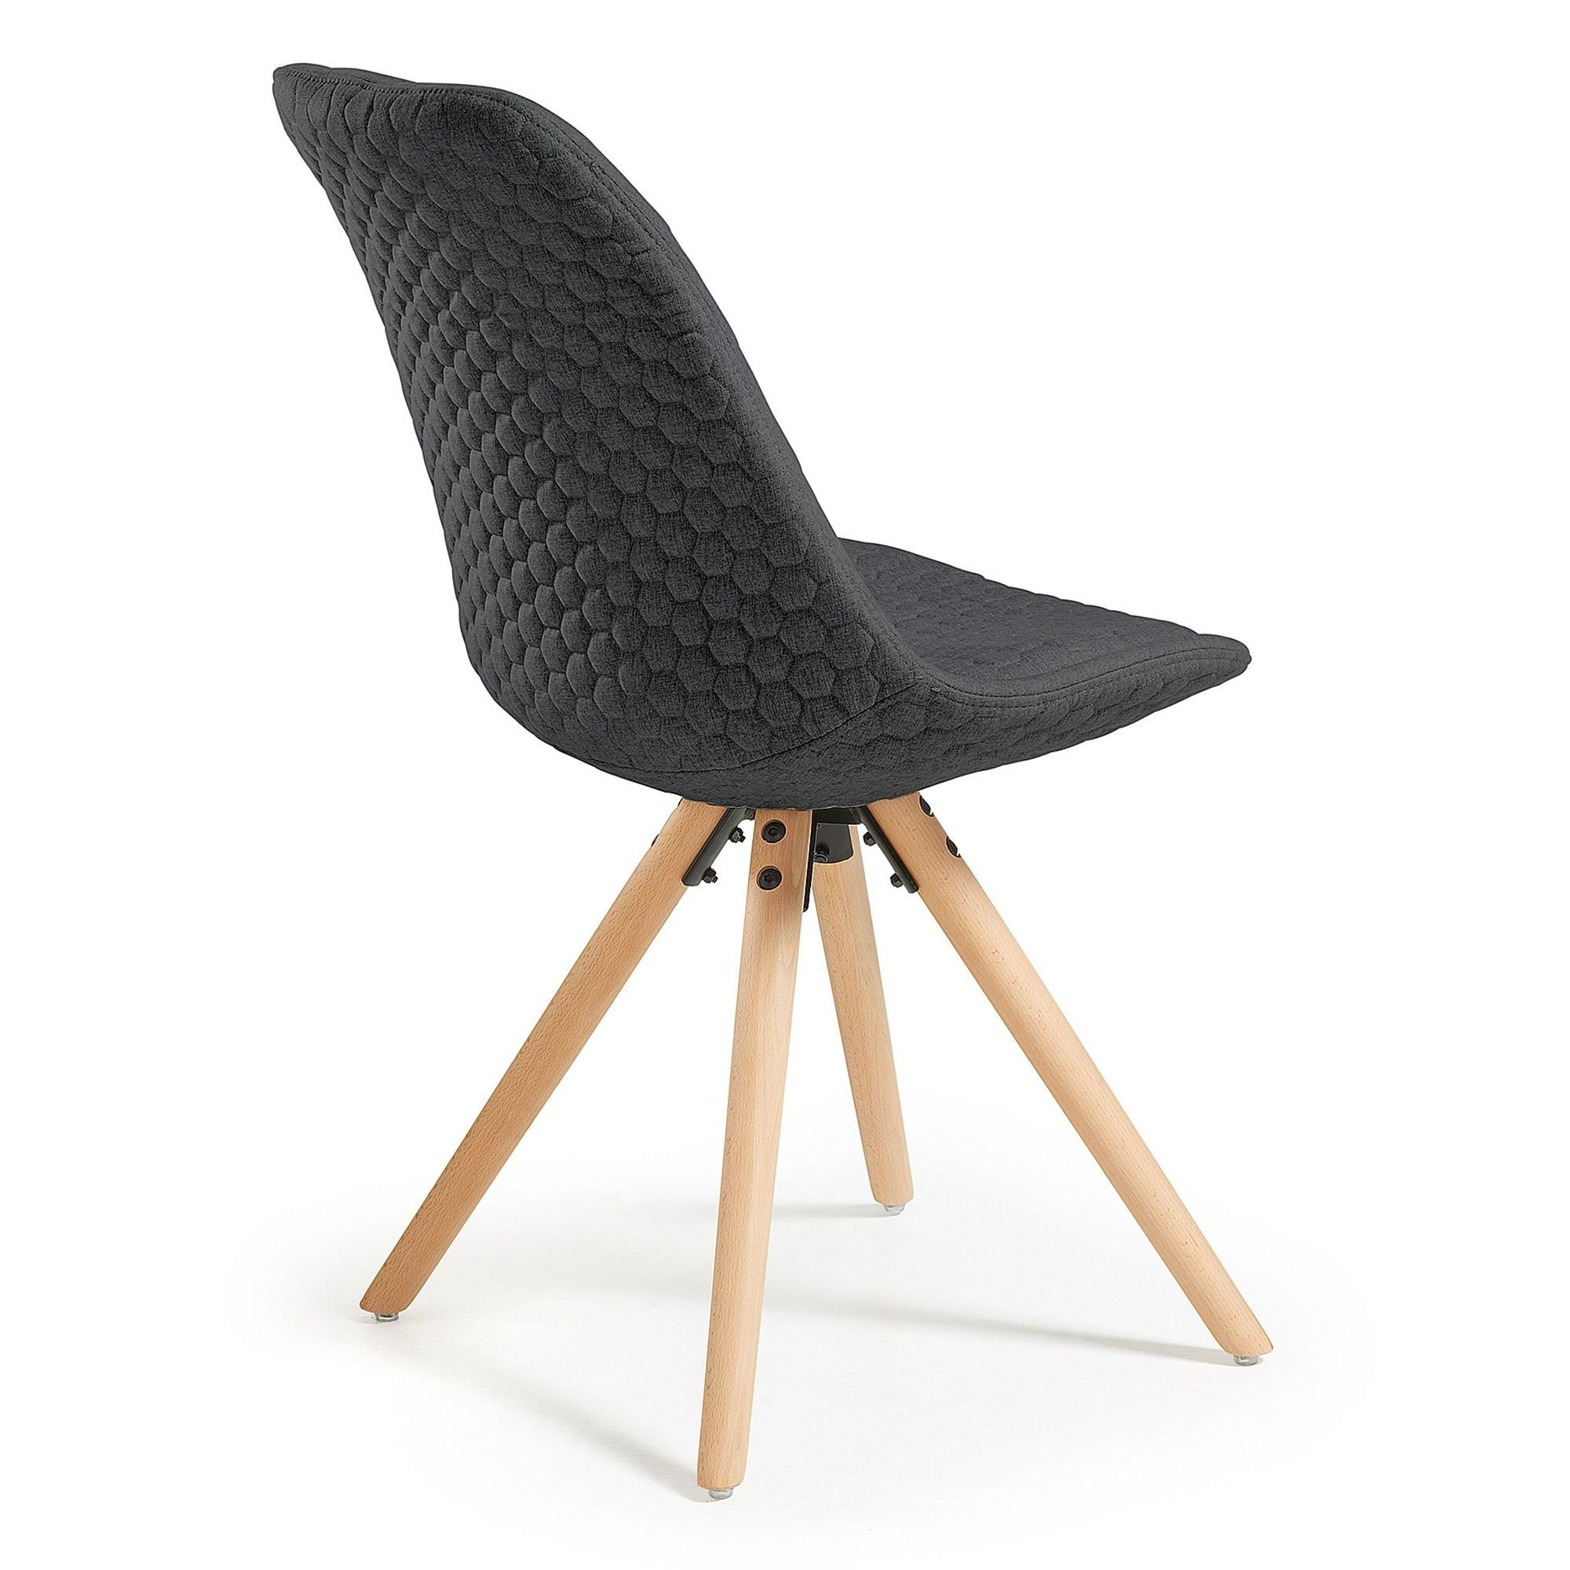 LaForma :: LARS Chair natural wood quilted fabric dark grey